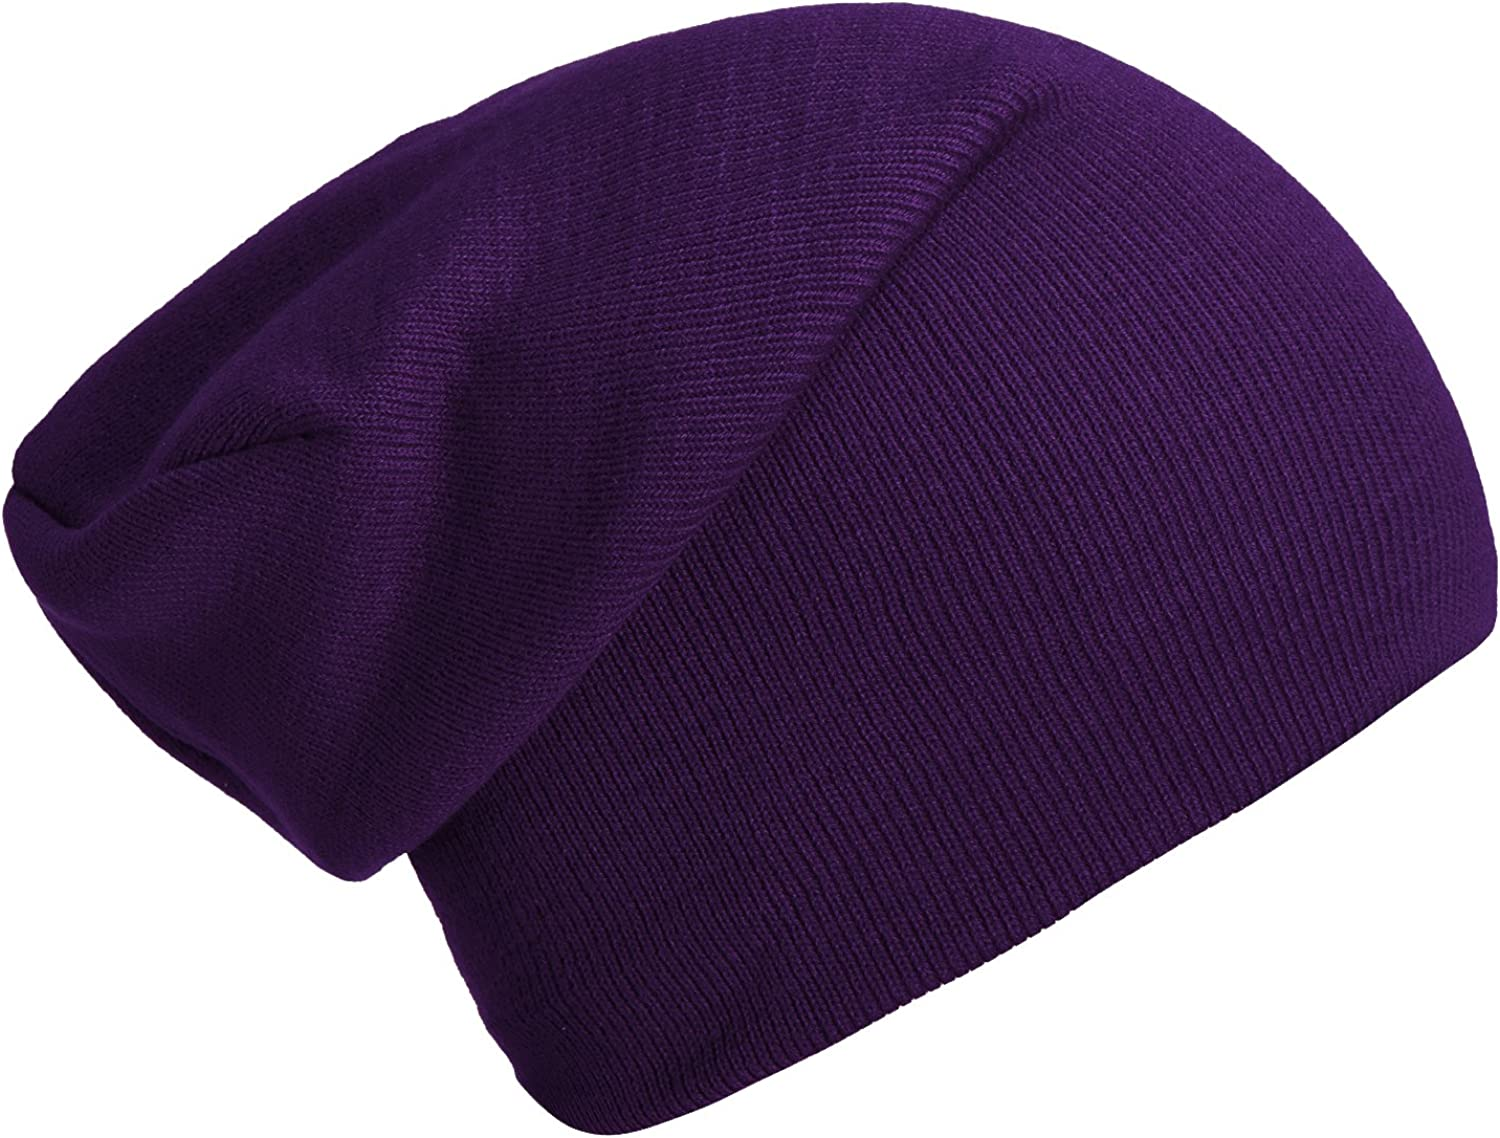 DonDon winter hat slouch beanie warm classical design modern and soft